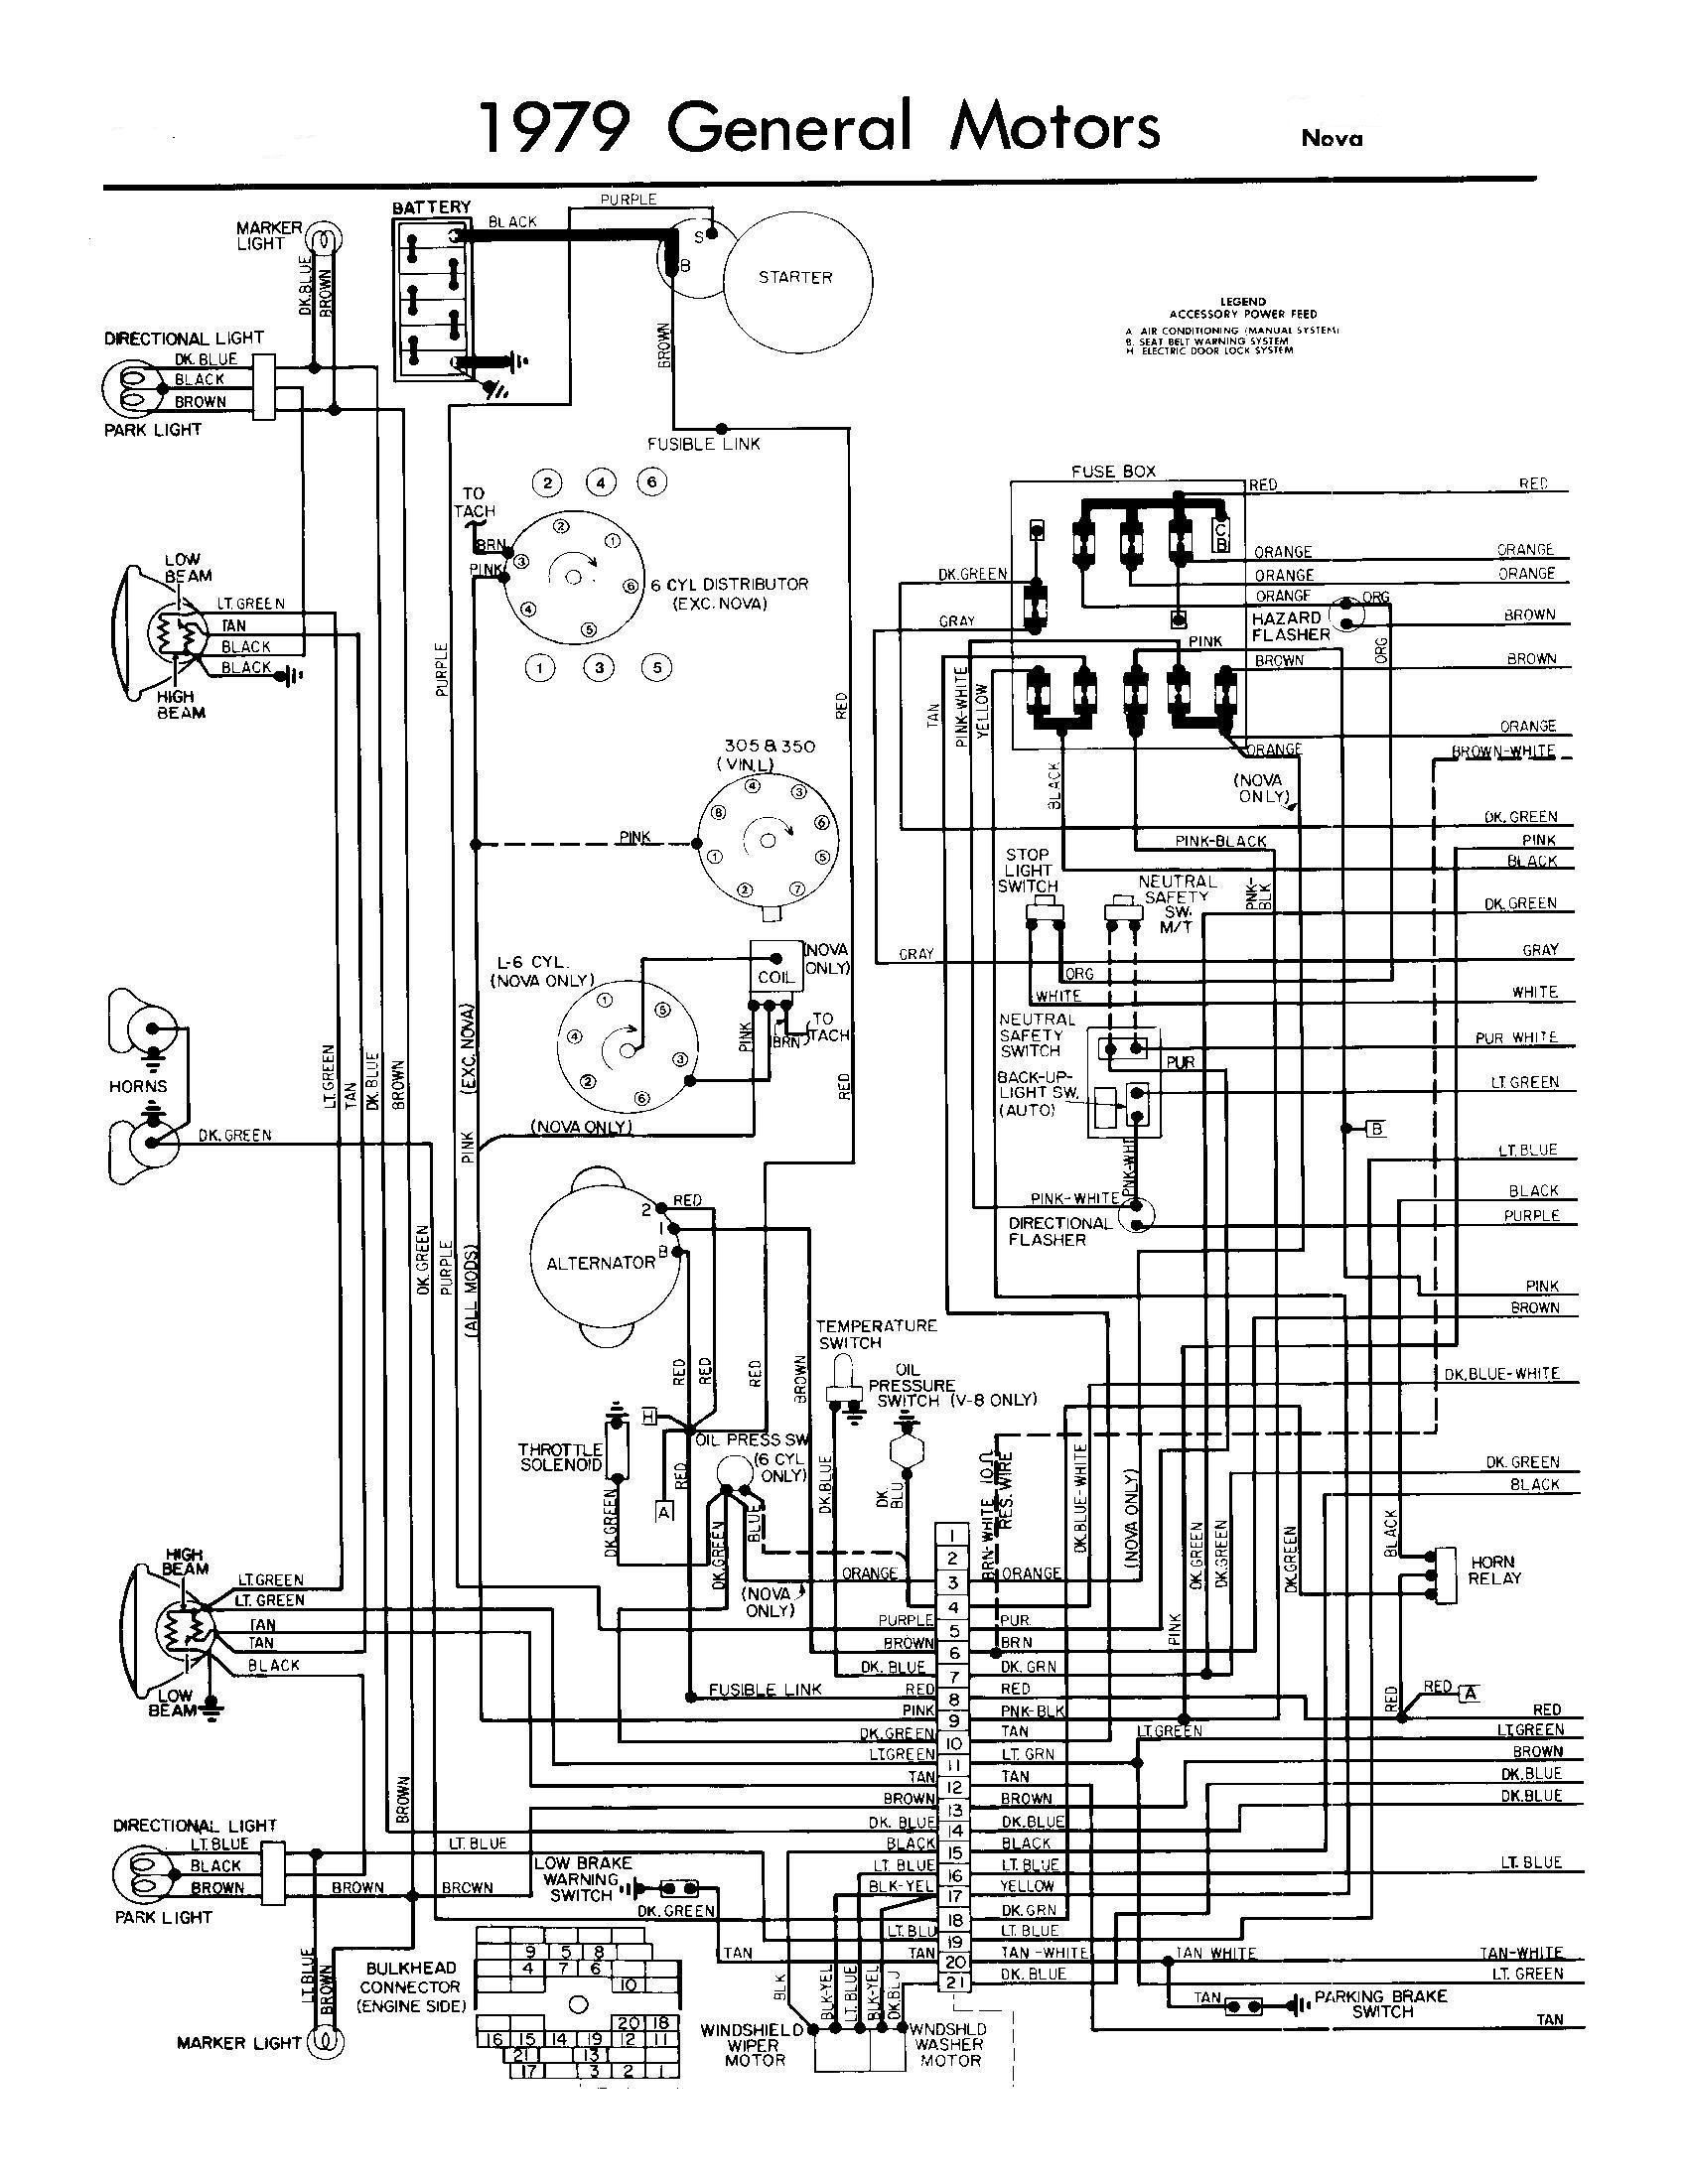 gmc truck wiring diagram wiring data diagram rh 17 meditativ wandern de